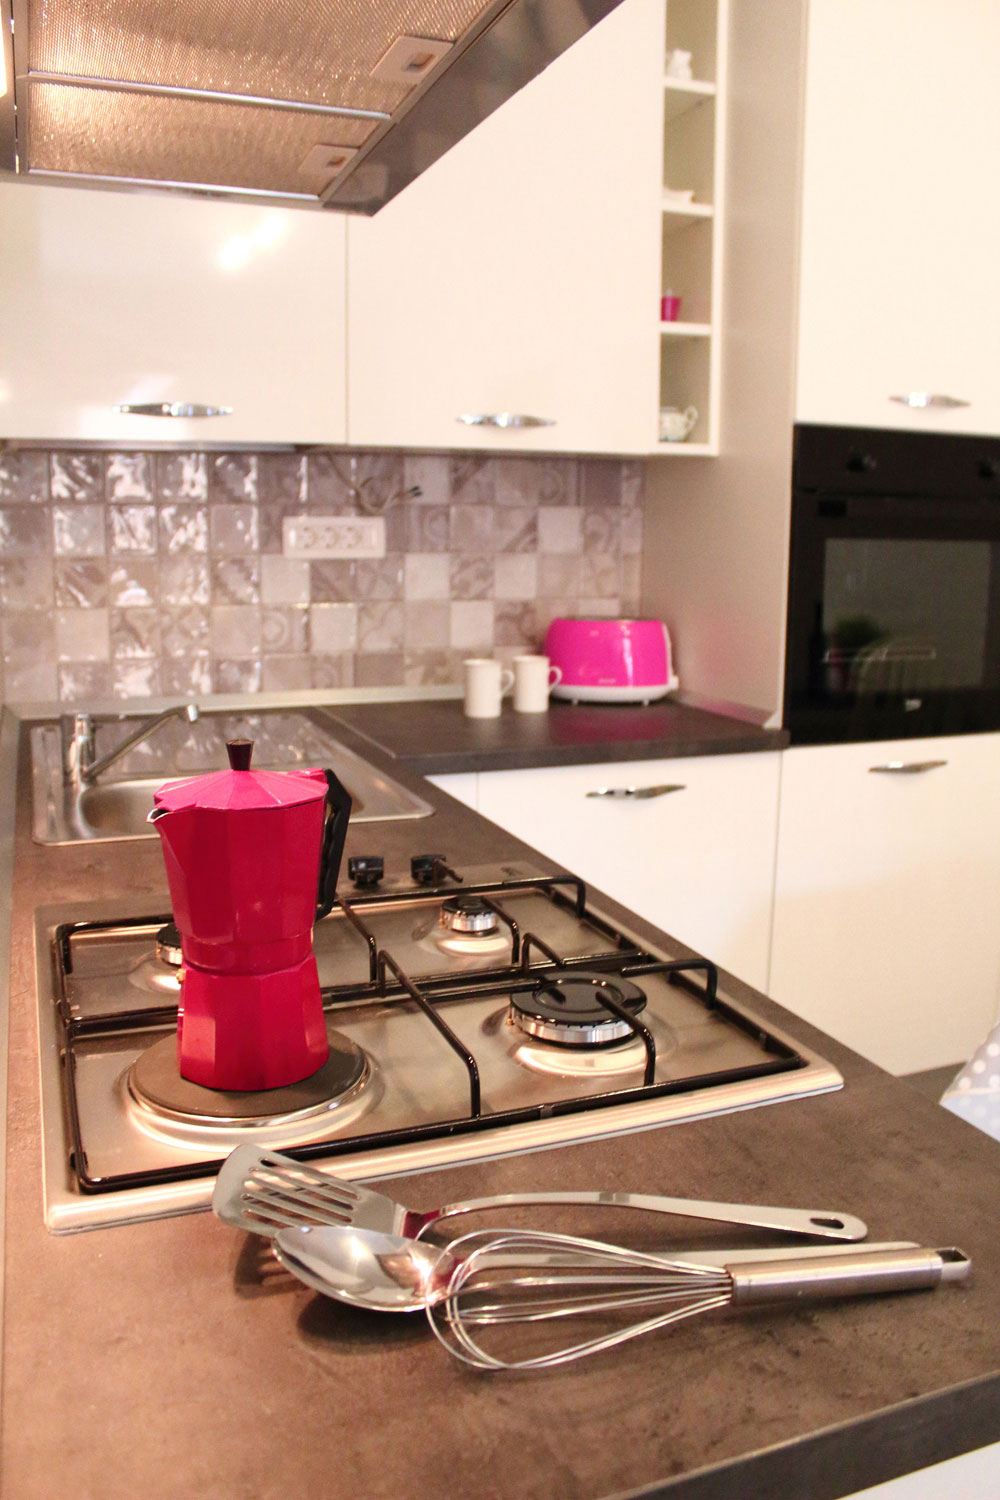 New holiday apartment in Opatija for 5 persons with kitchen appliances